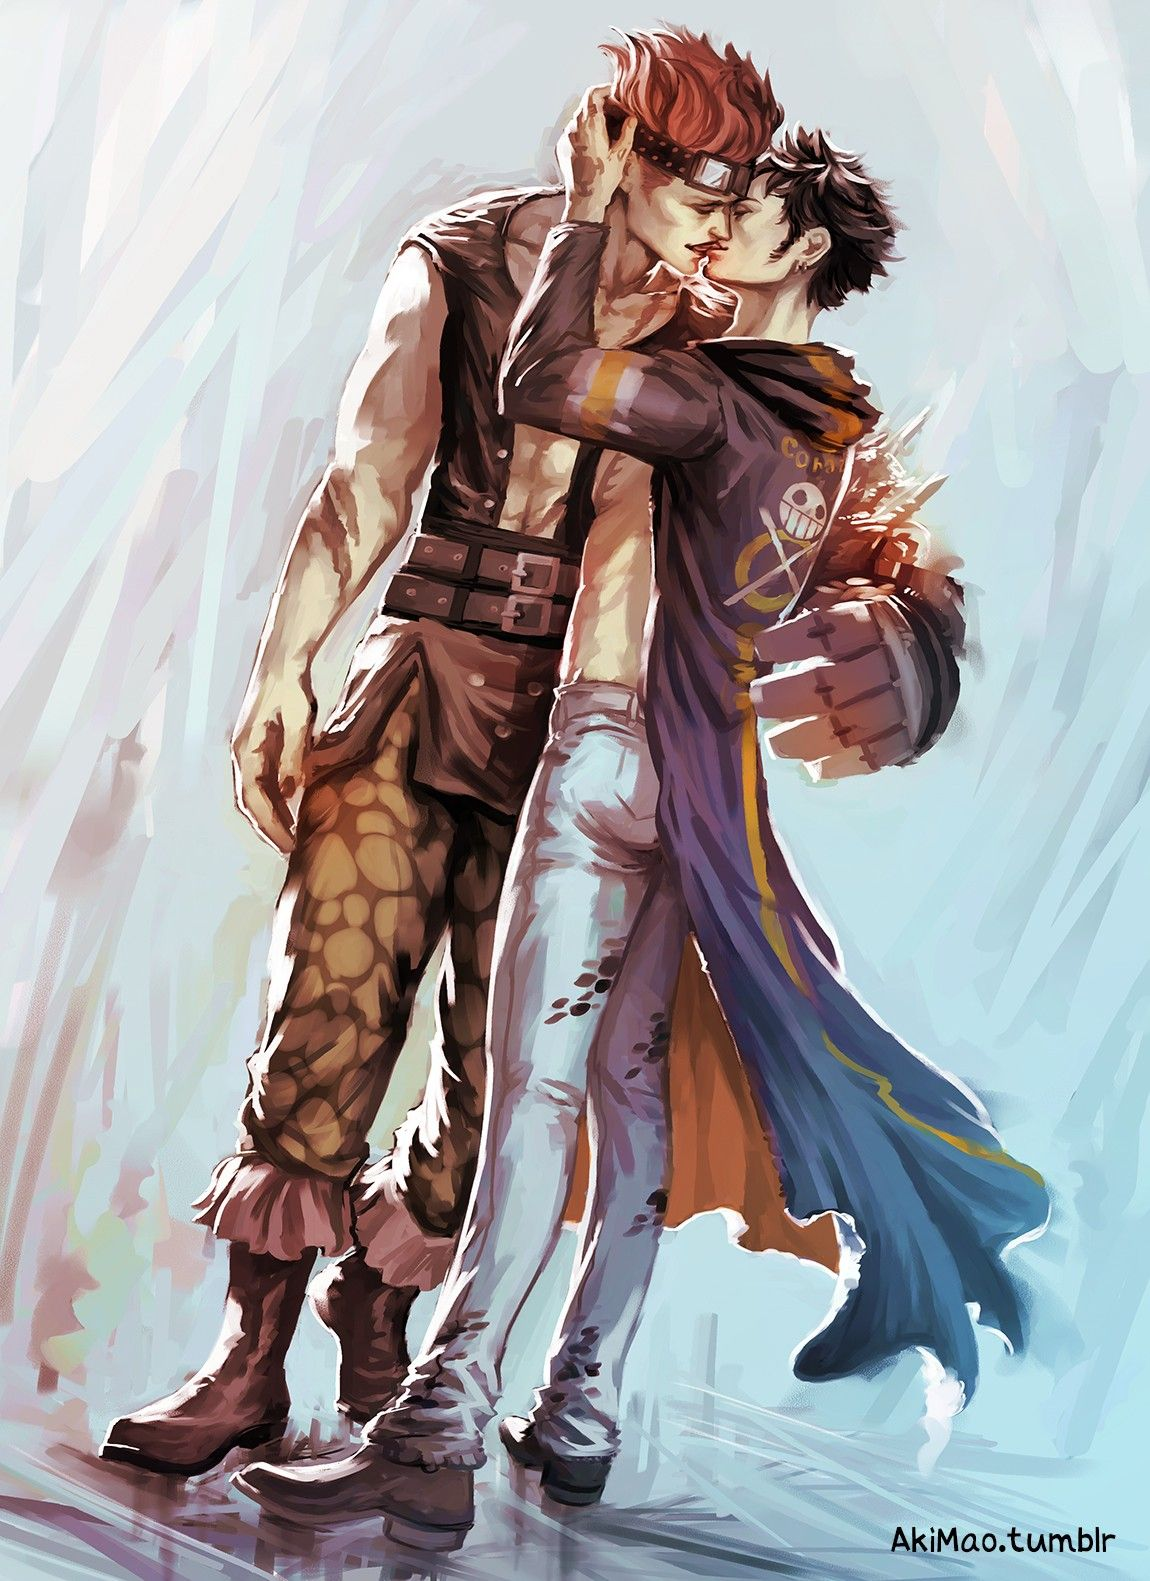 Pin by Mey Rin on 羅 One piece comic, One piece images